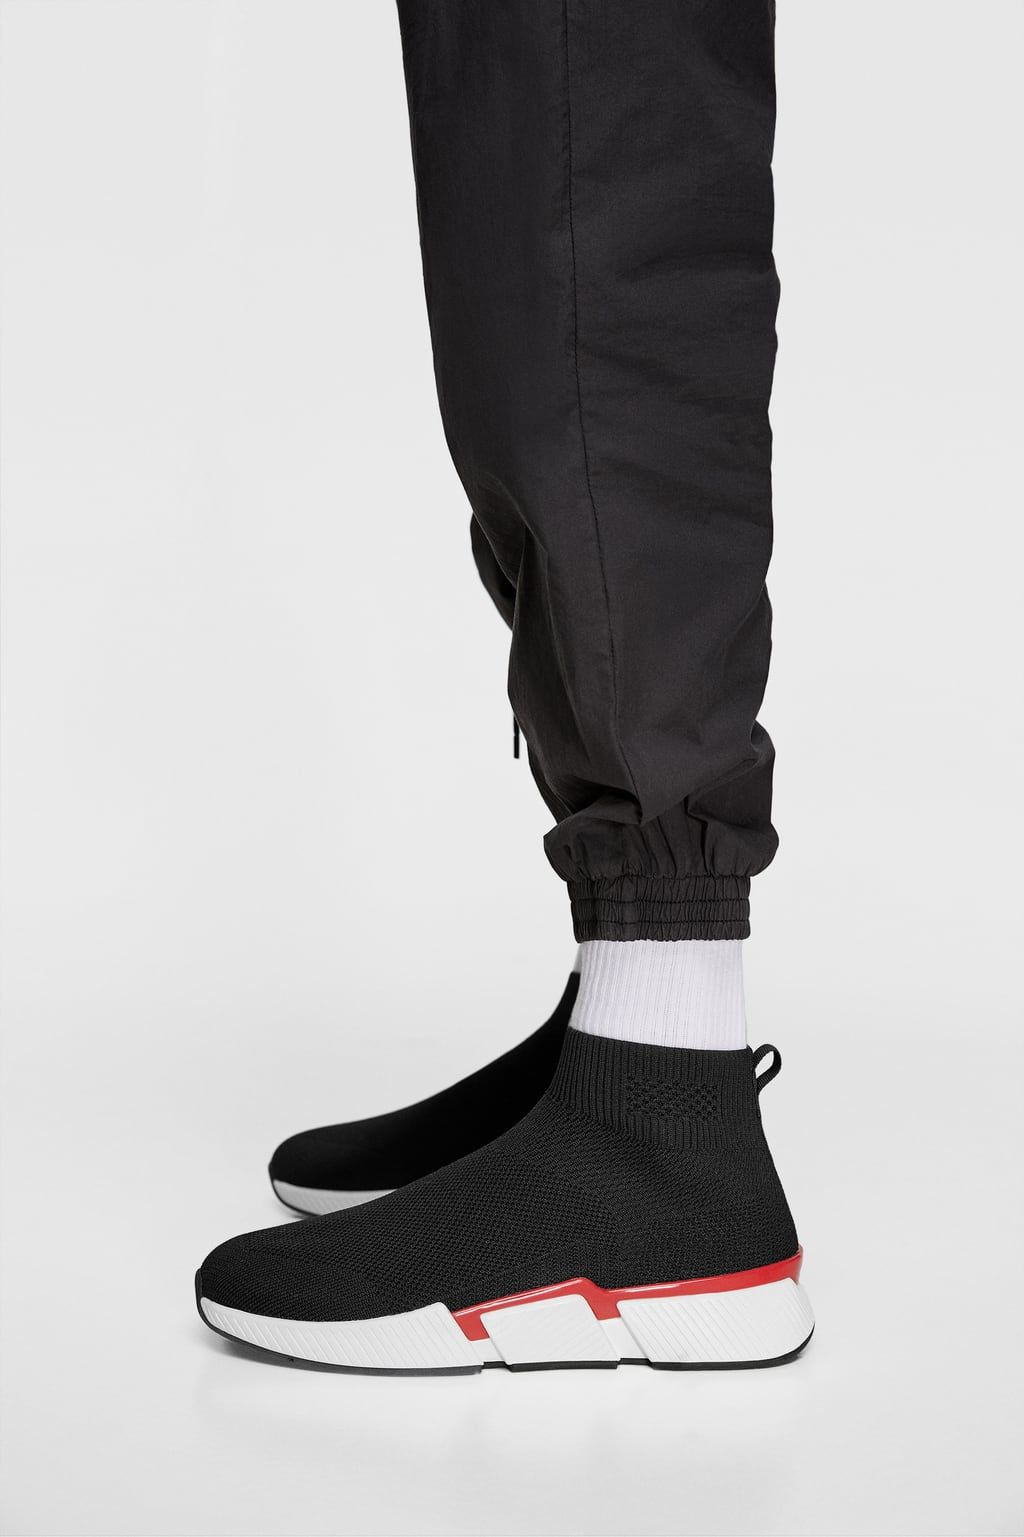 SOCK-STYLE HIGH-TOP SNEAKERS-Boots